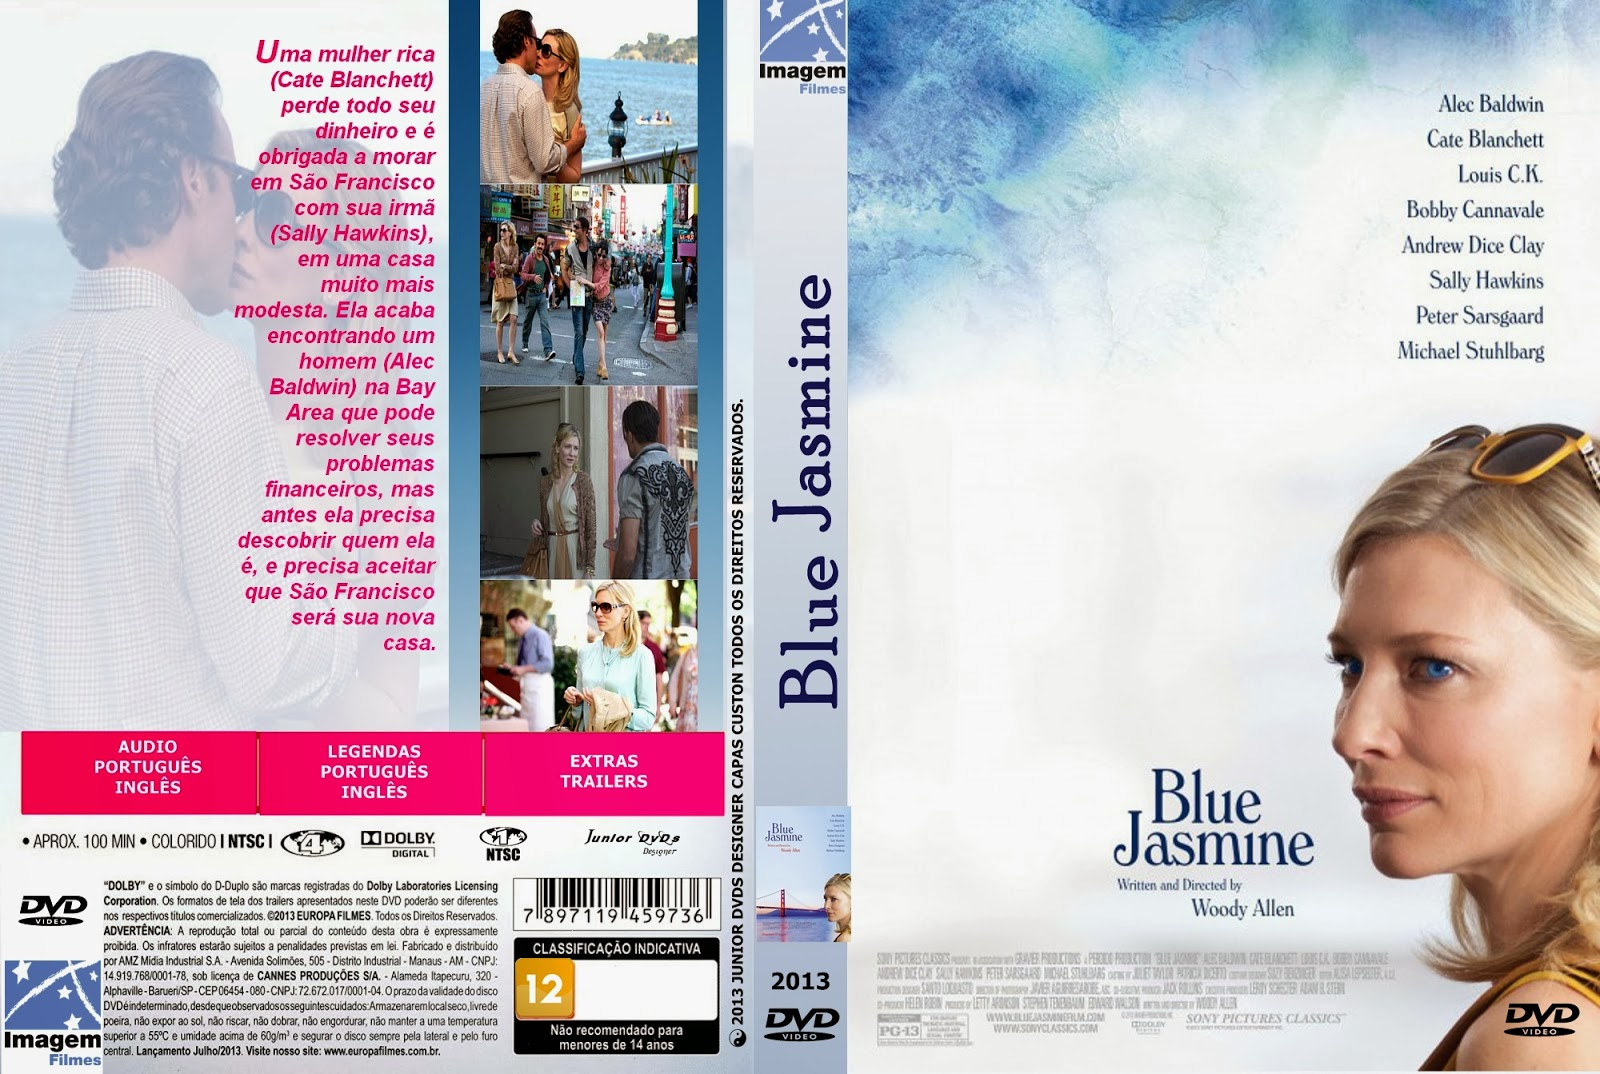 Blue Jasmine BDRip XviD Dual Áudio CAPA DO FILME BLUE FASMINE   JUNIOR DVDS DESIGNE